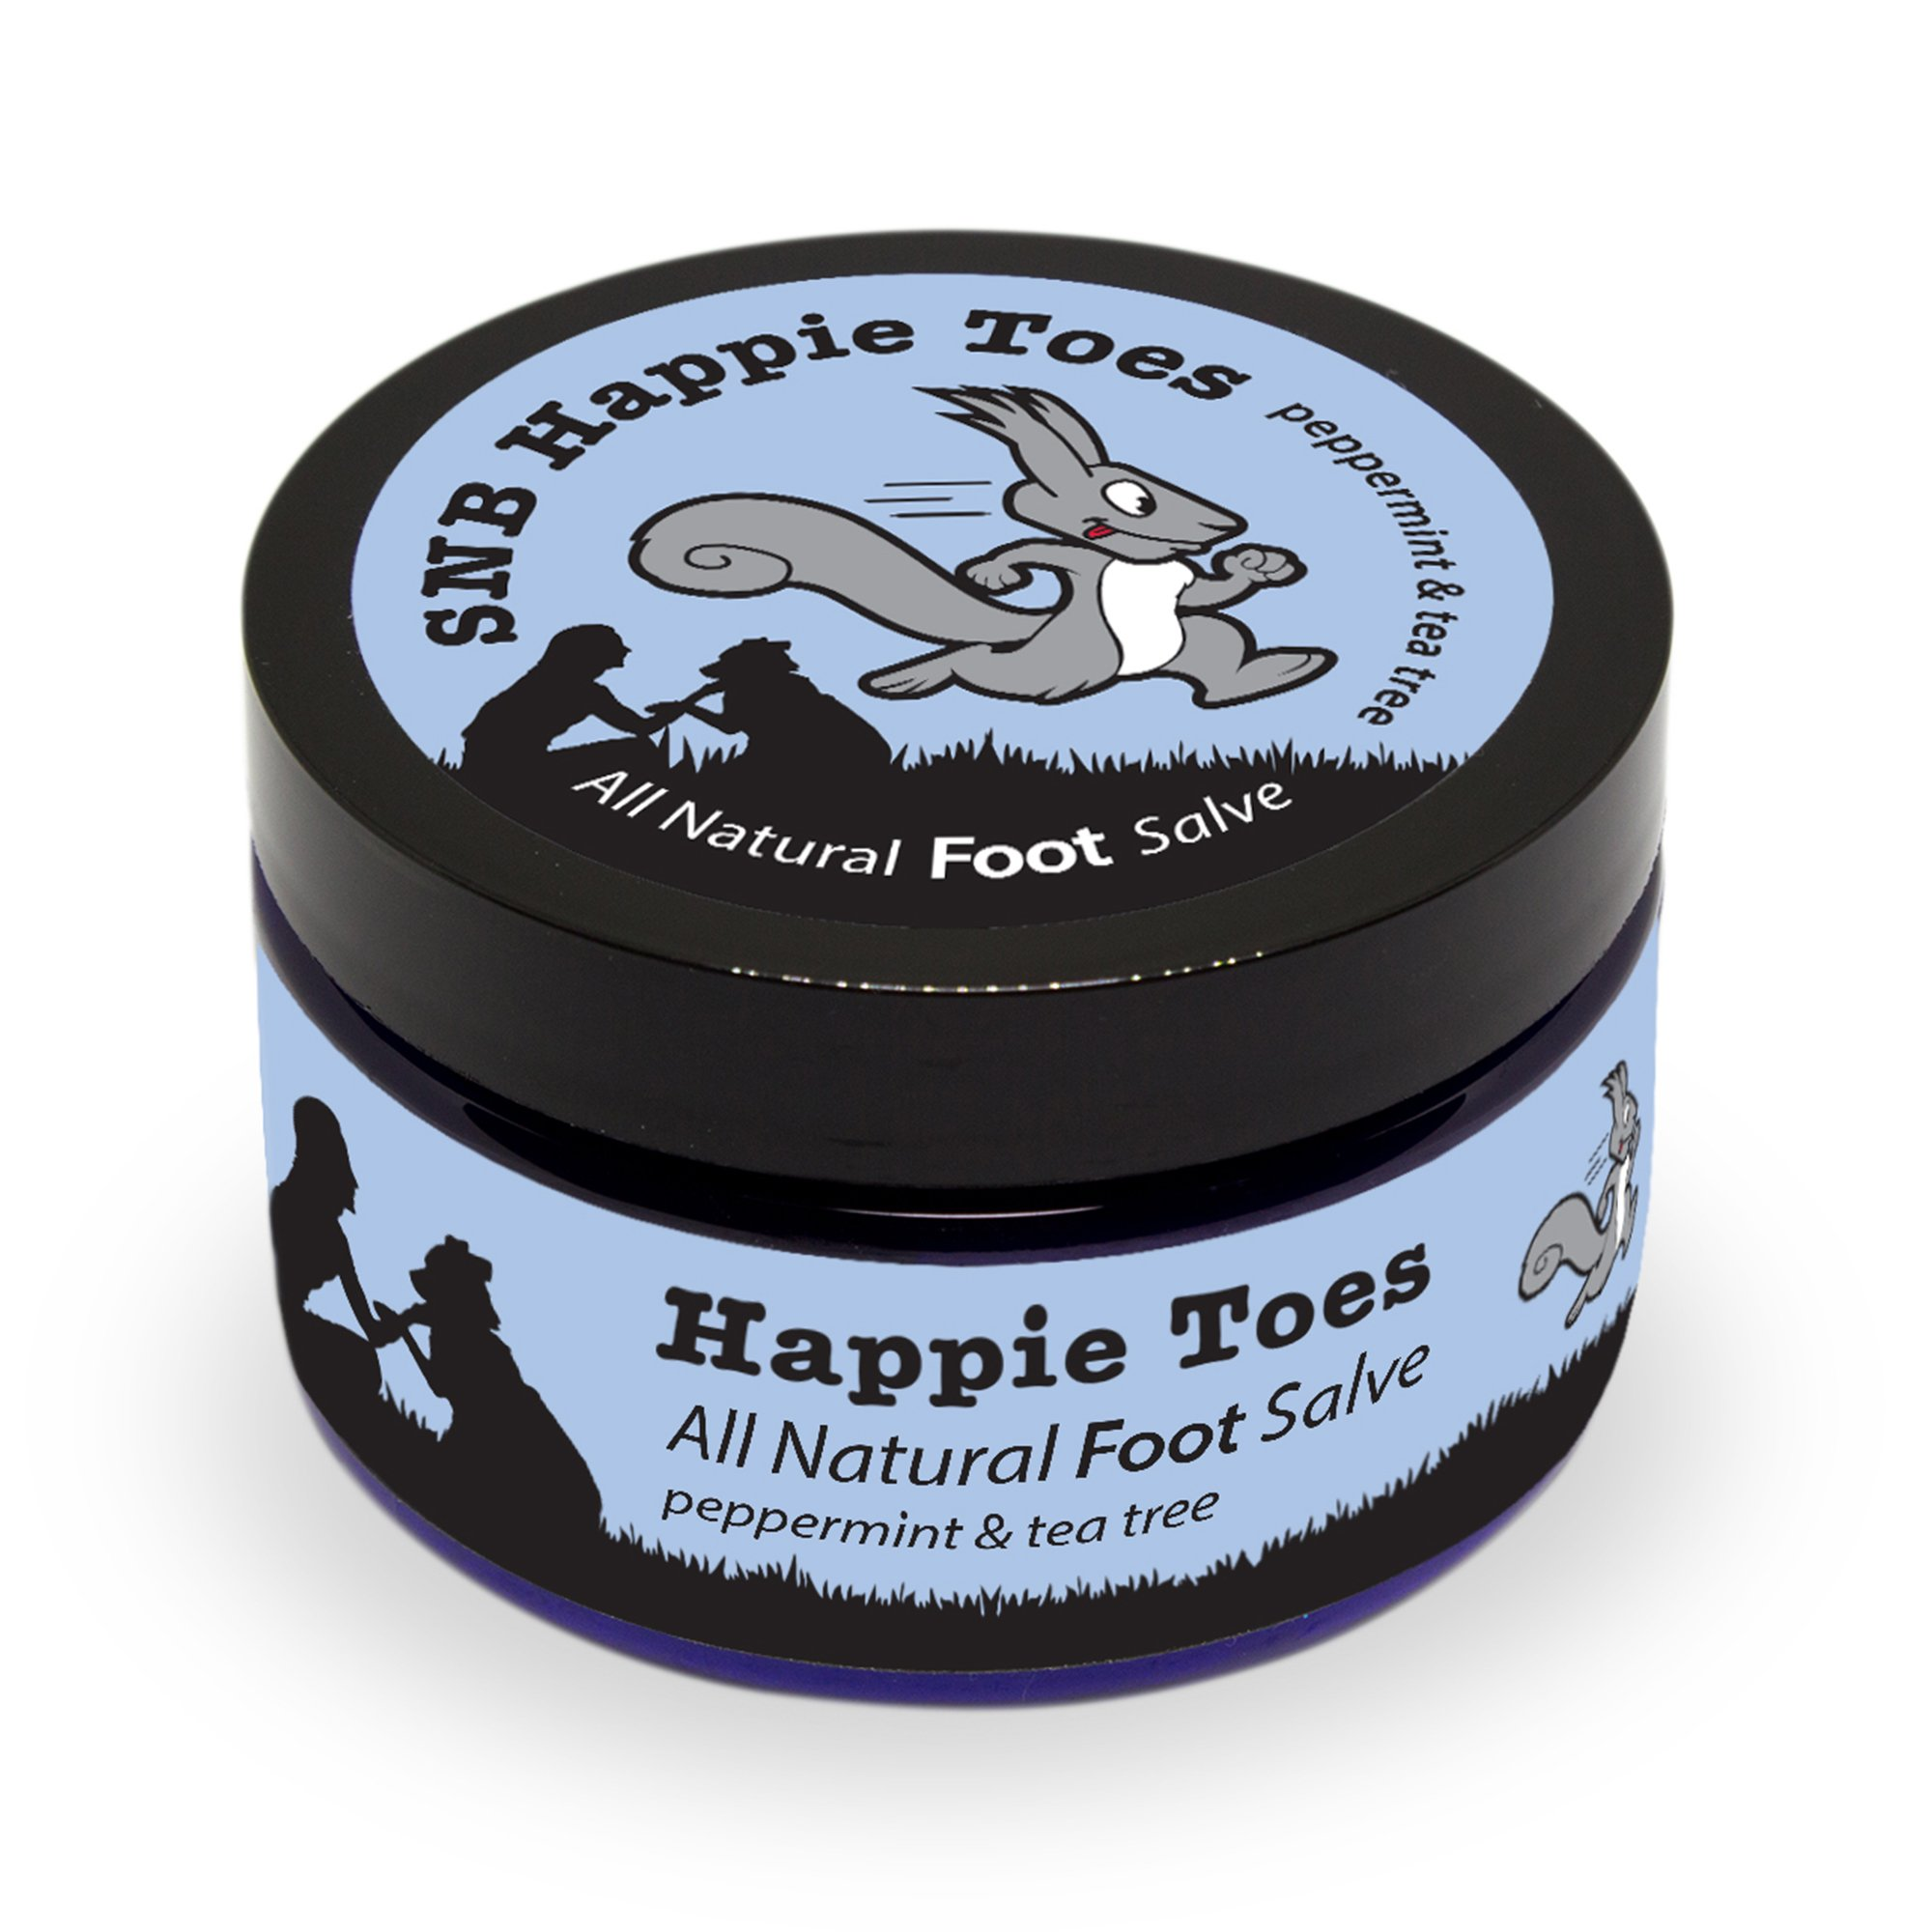 Squirrel's Nut Butter Happy Toes All Natural Foot Salve, Tub, 4.0 oz, Peppermint & Tea Tree by Squirrel's Nut Butter (Image #2)